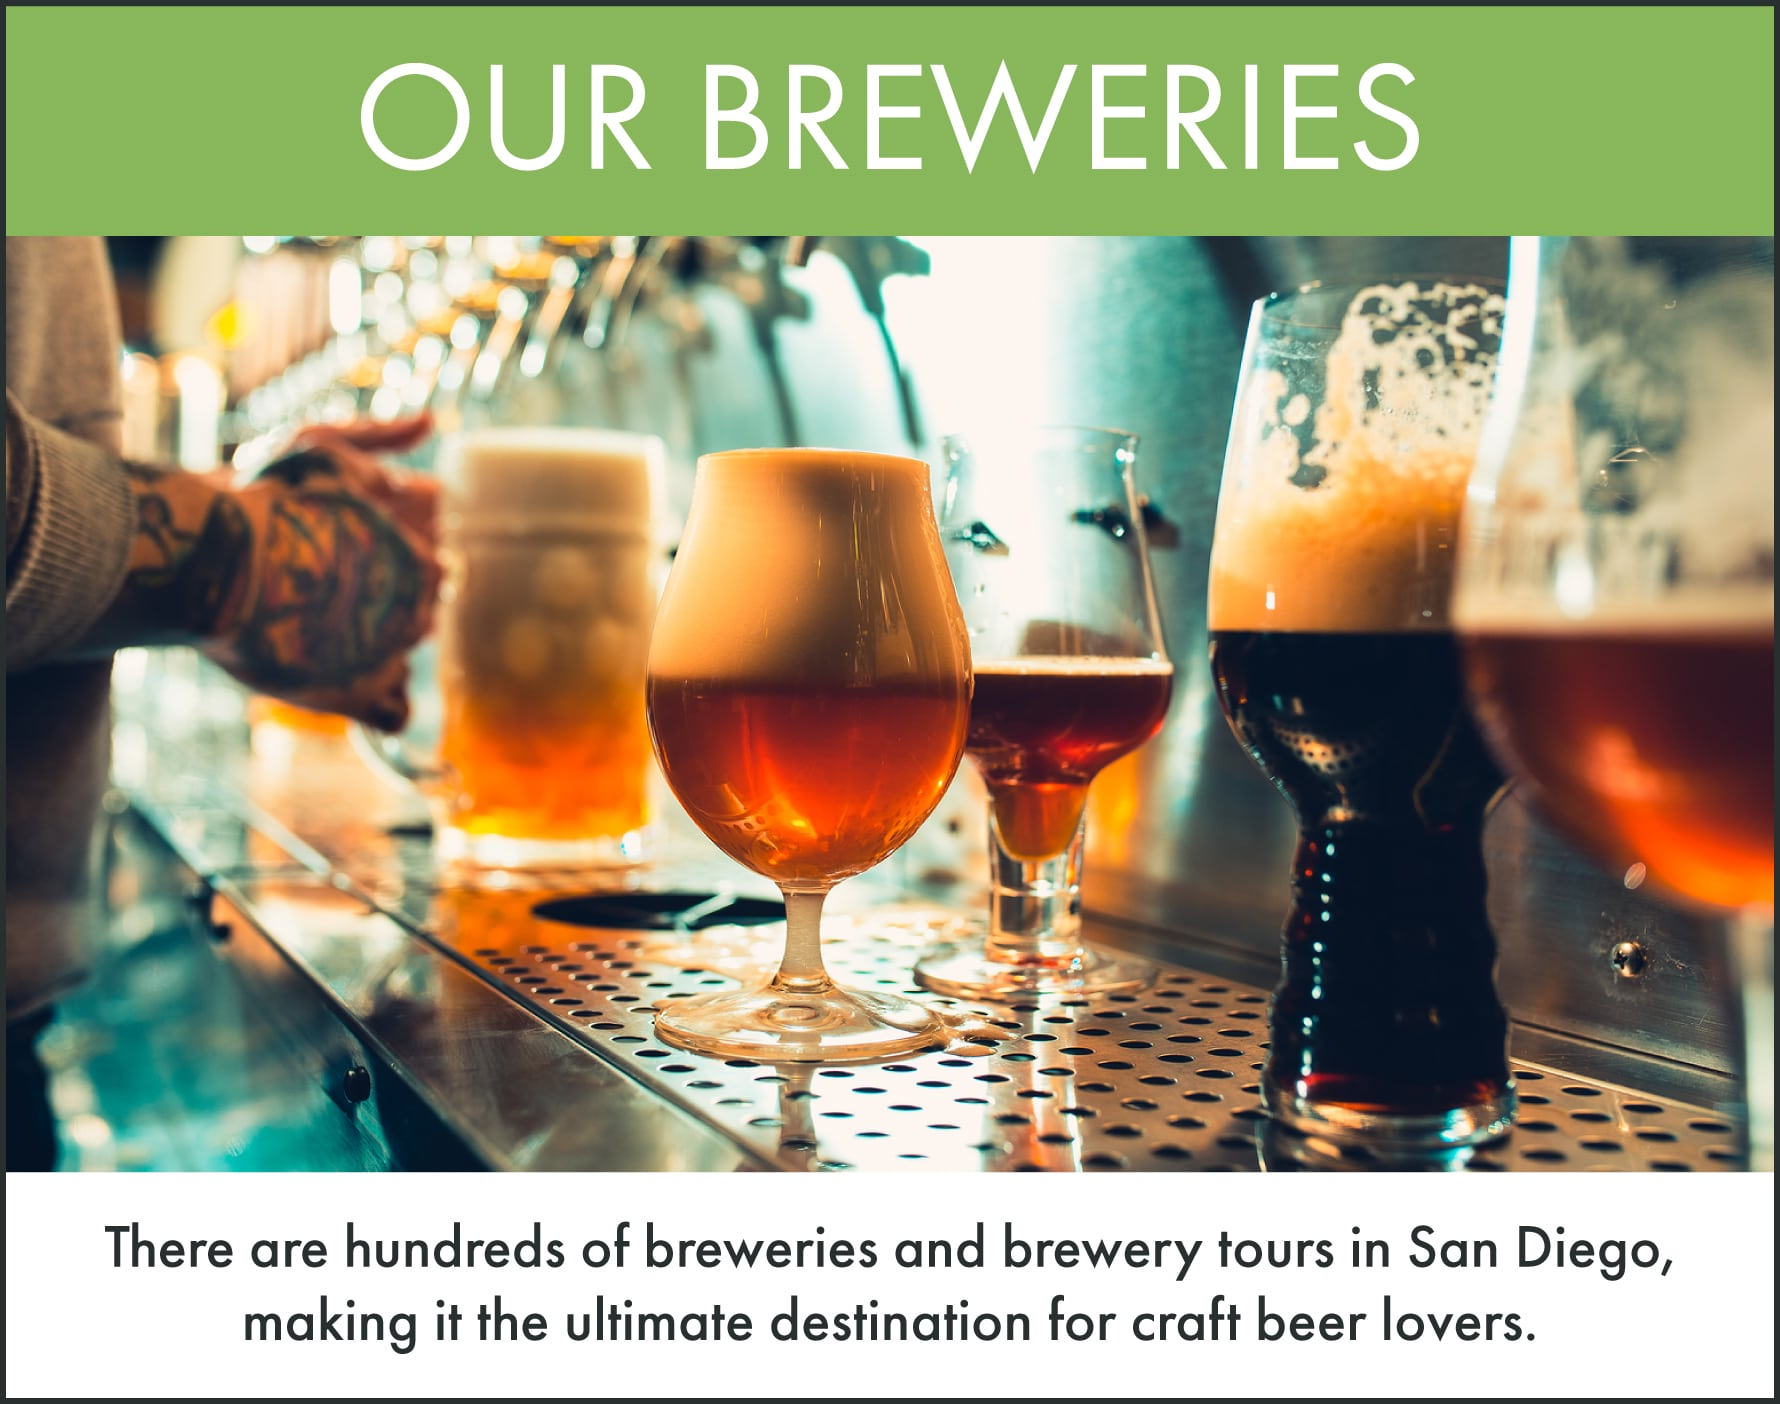 Things to do in San Diego: Craft beer